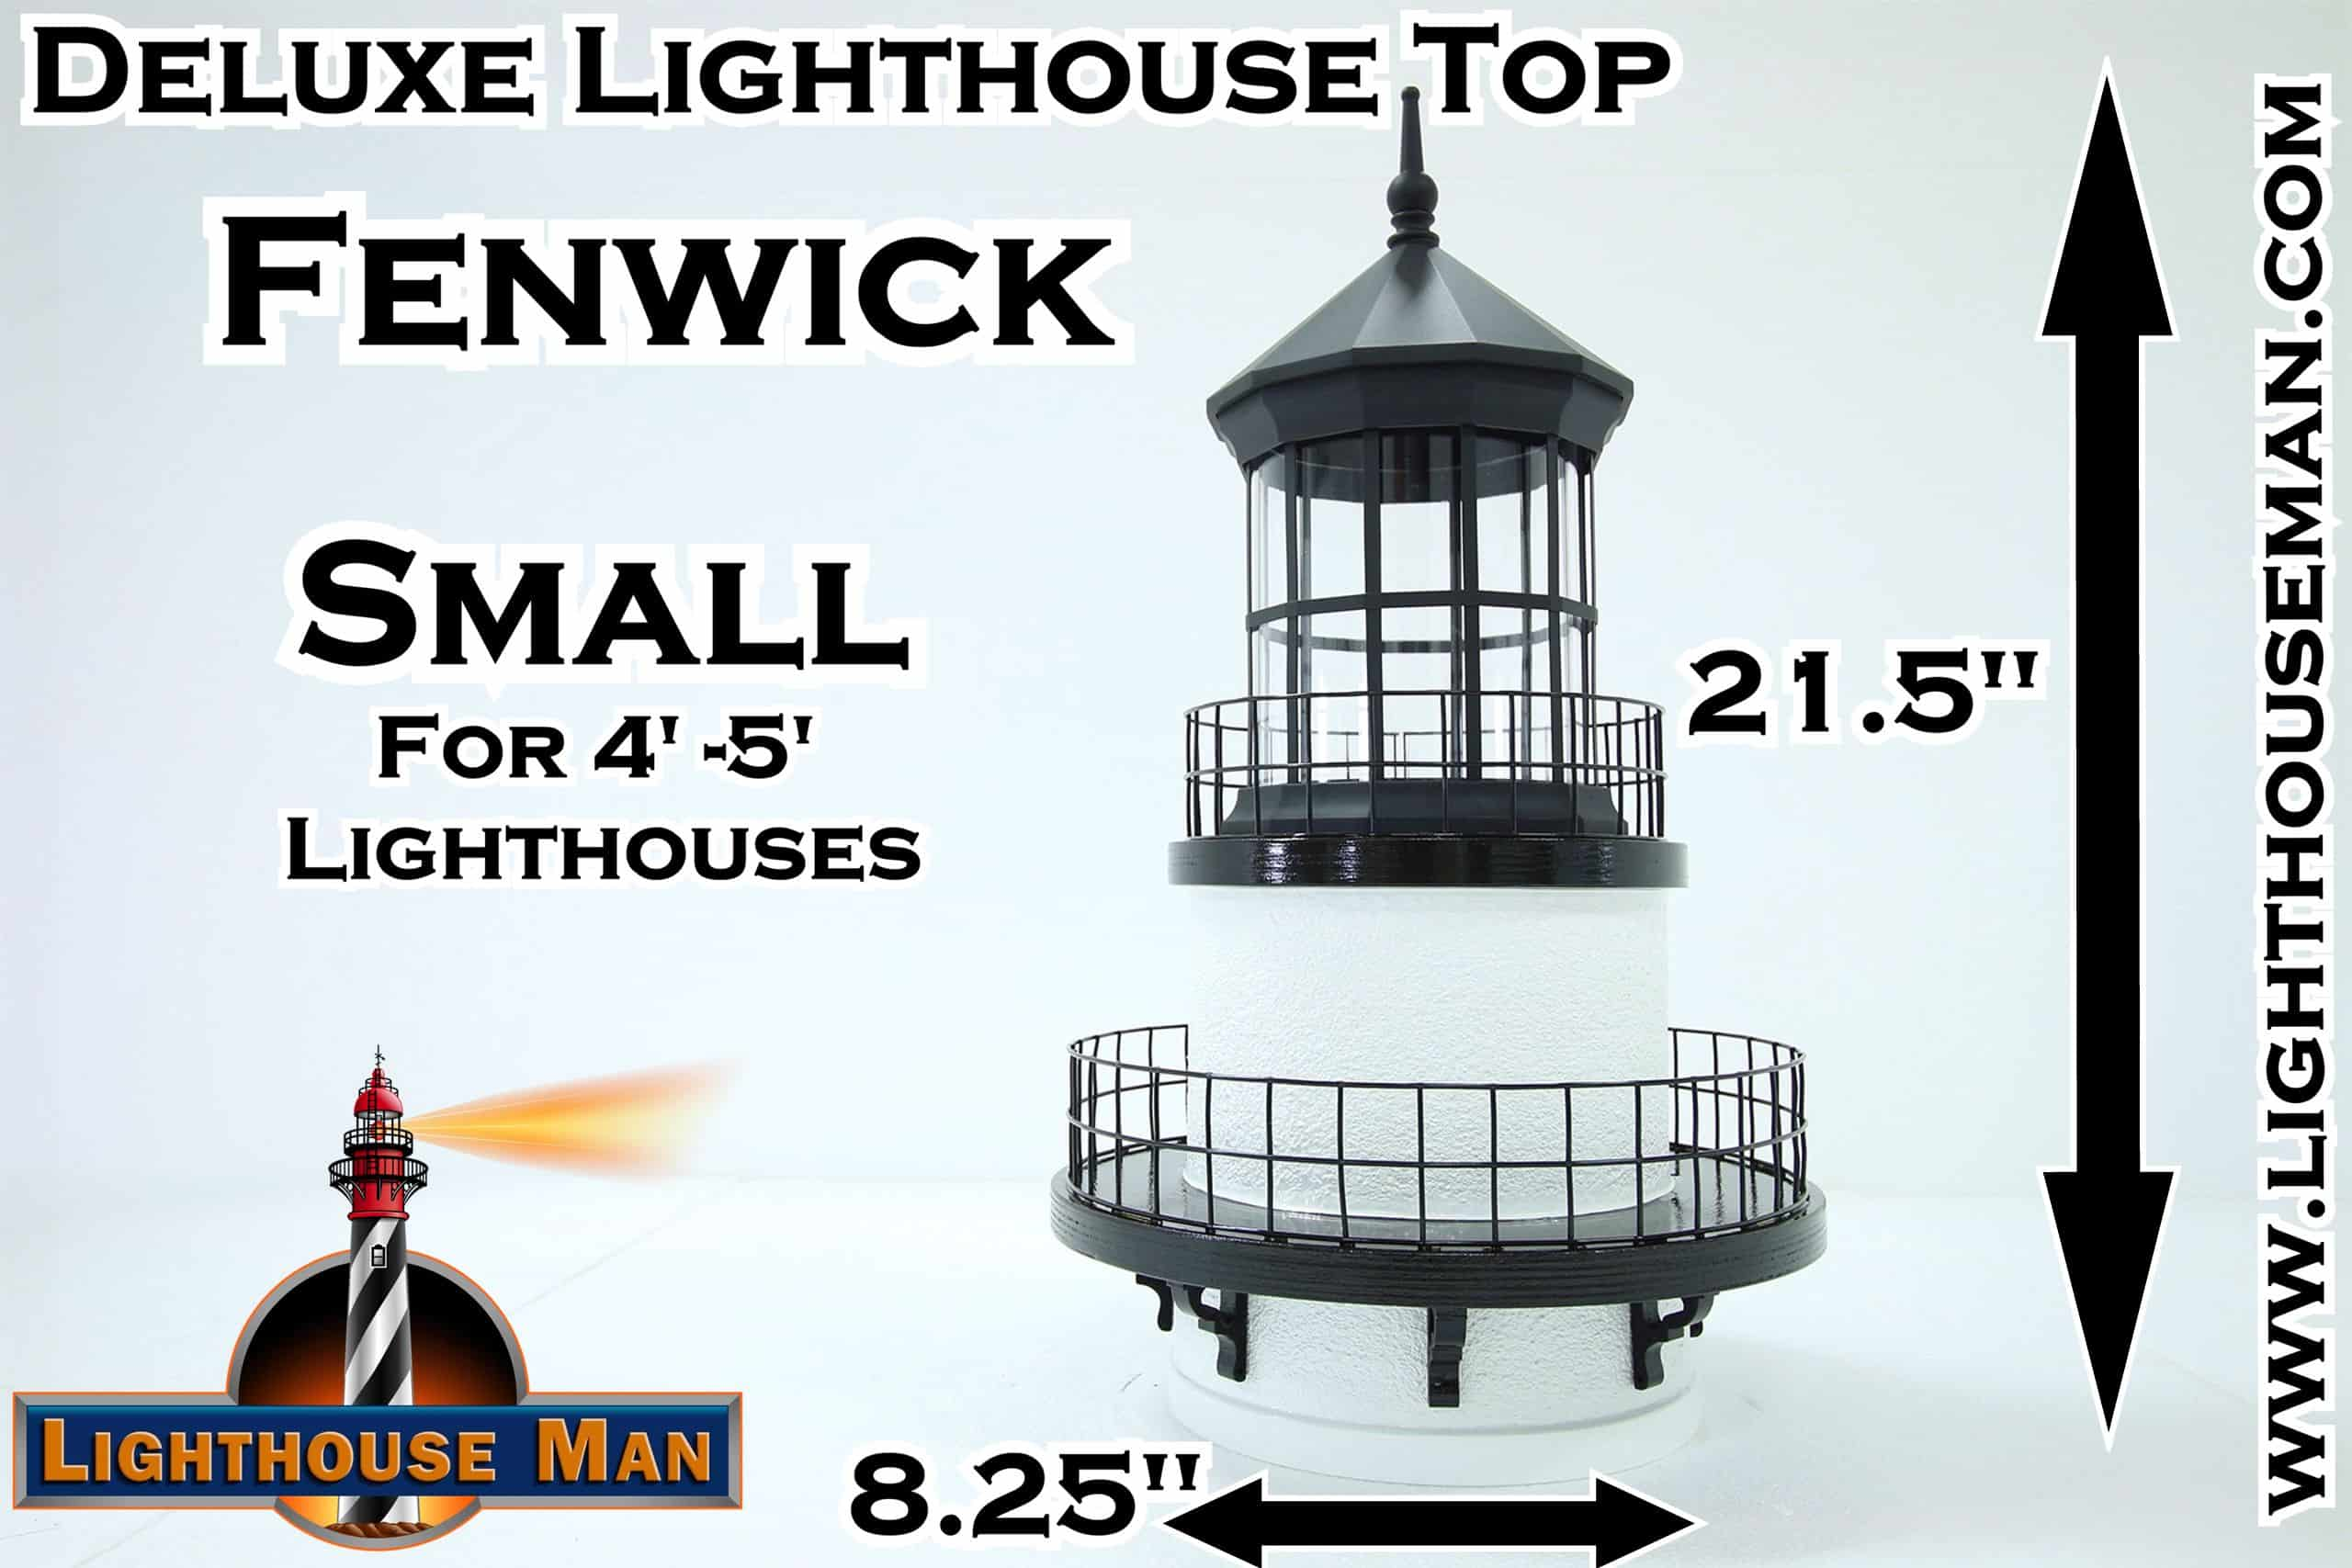 Deluxe Small Fenwick Lighthouse Top